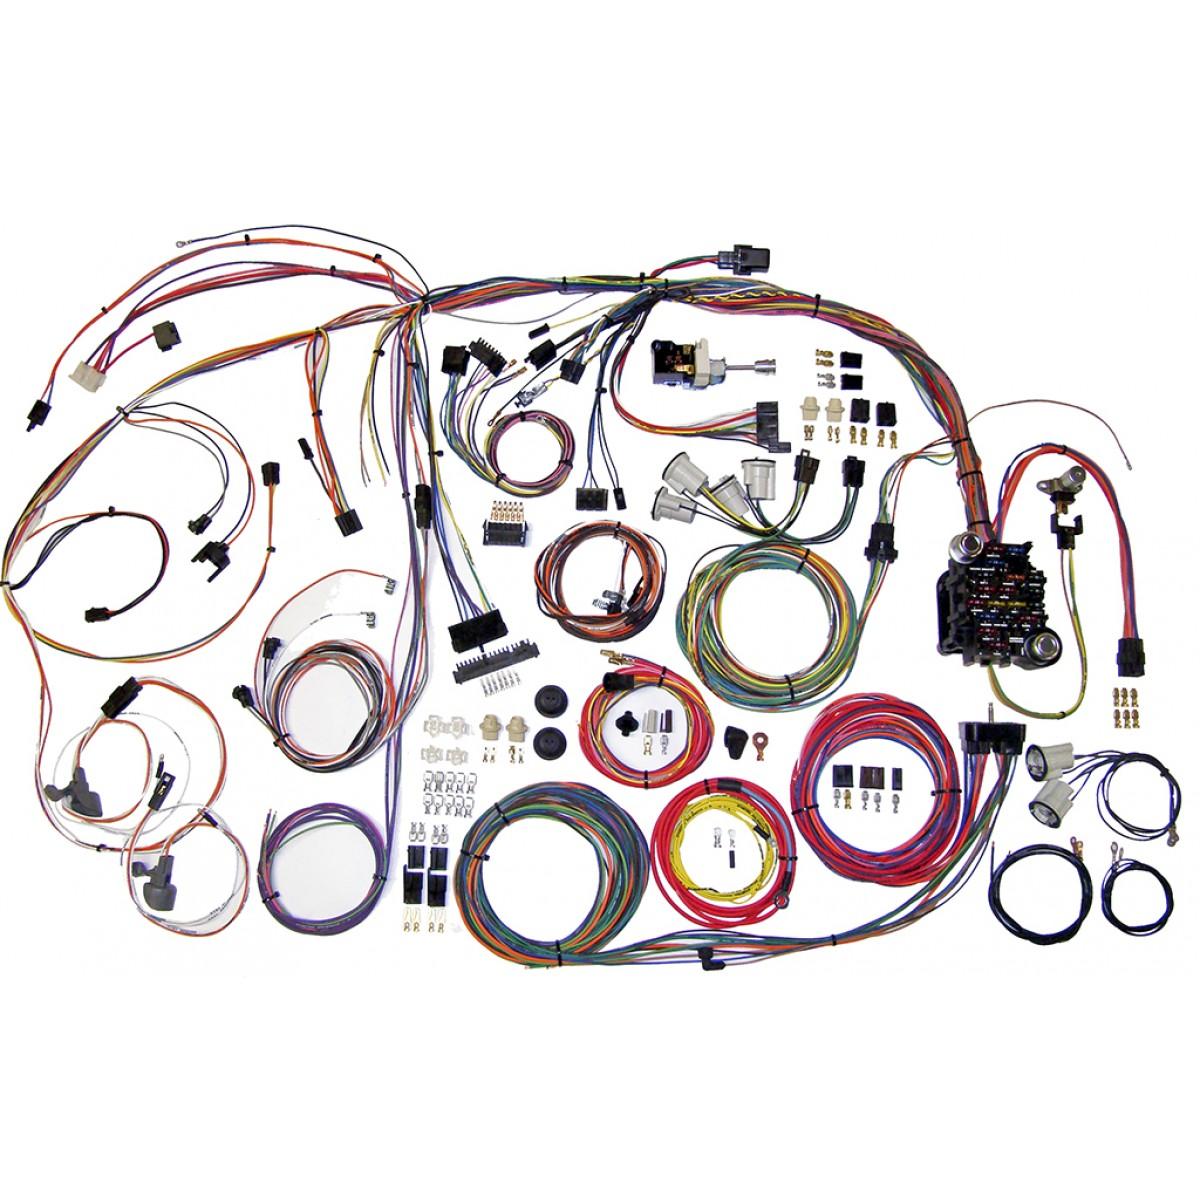 hight resolution of 1970 1972 chevelle complete wiring harness kit 1970 1972 chevelle rh code510 com 1970 chevelle engine